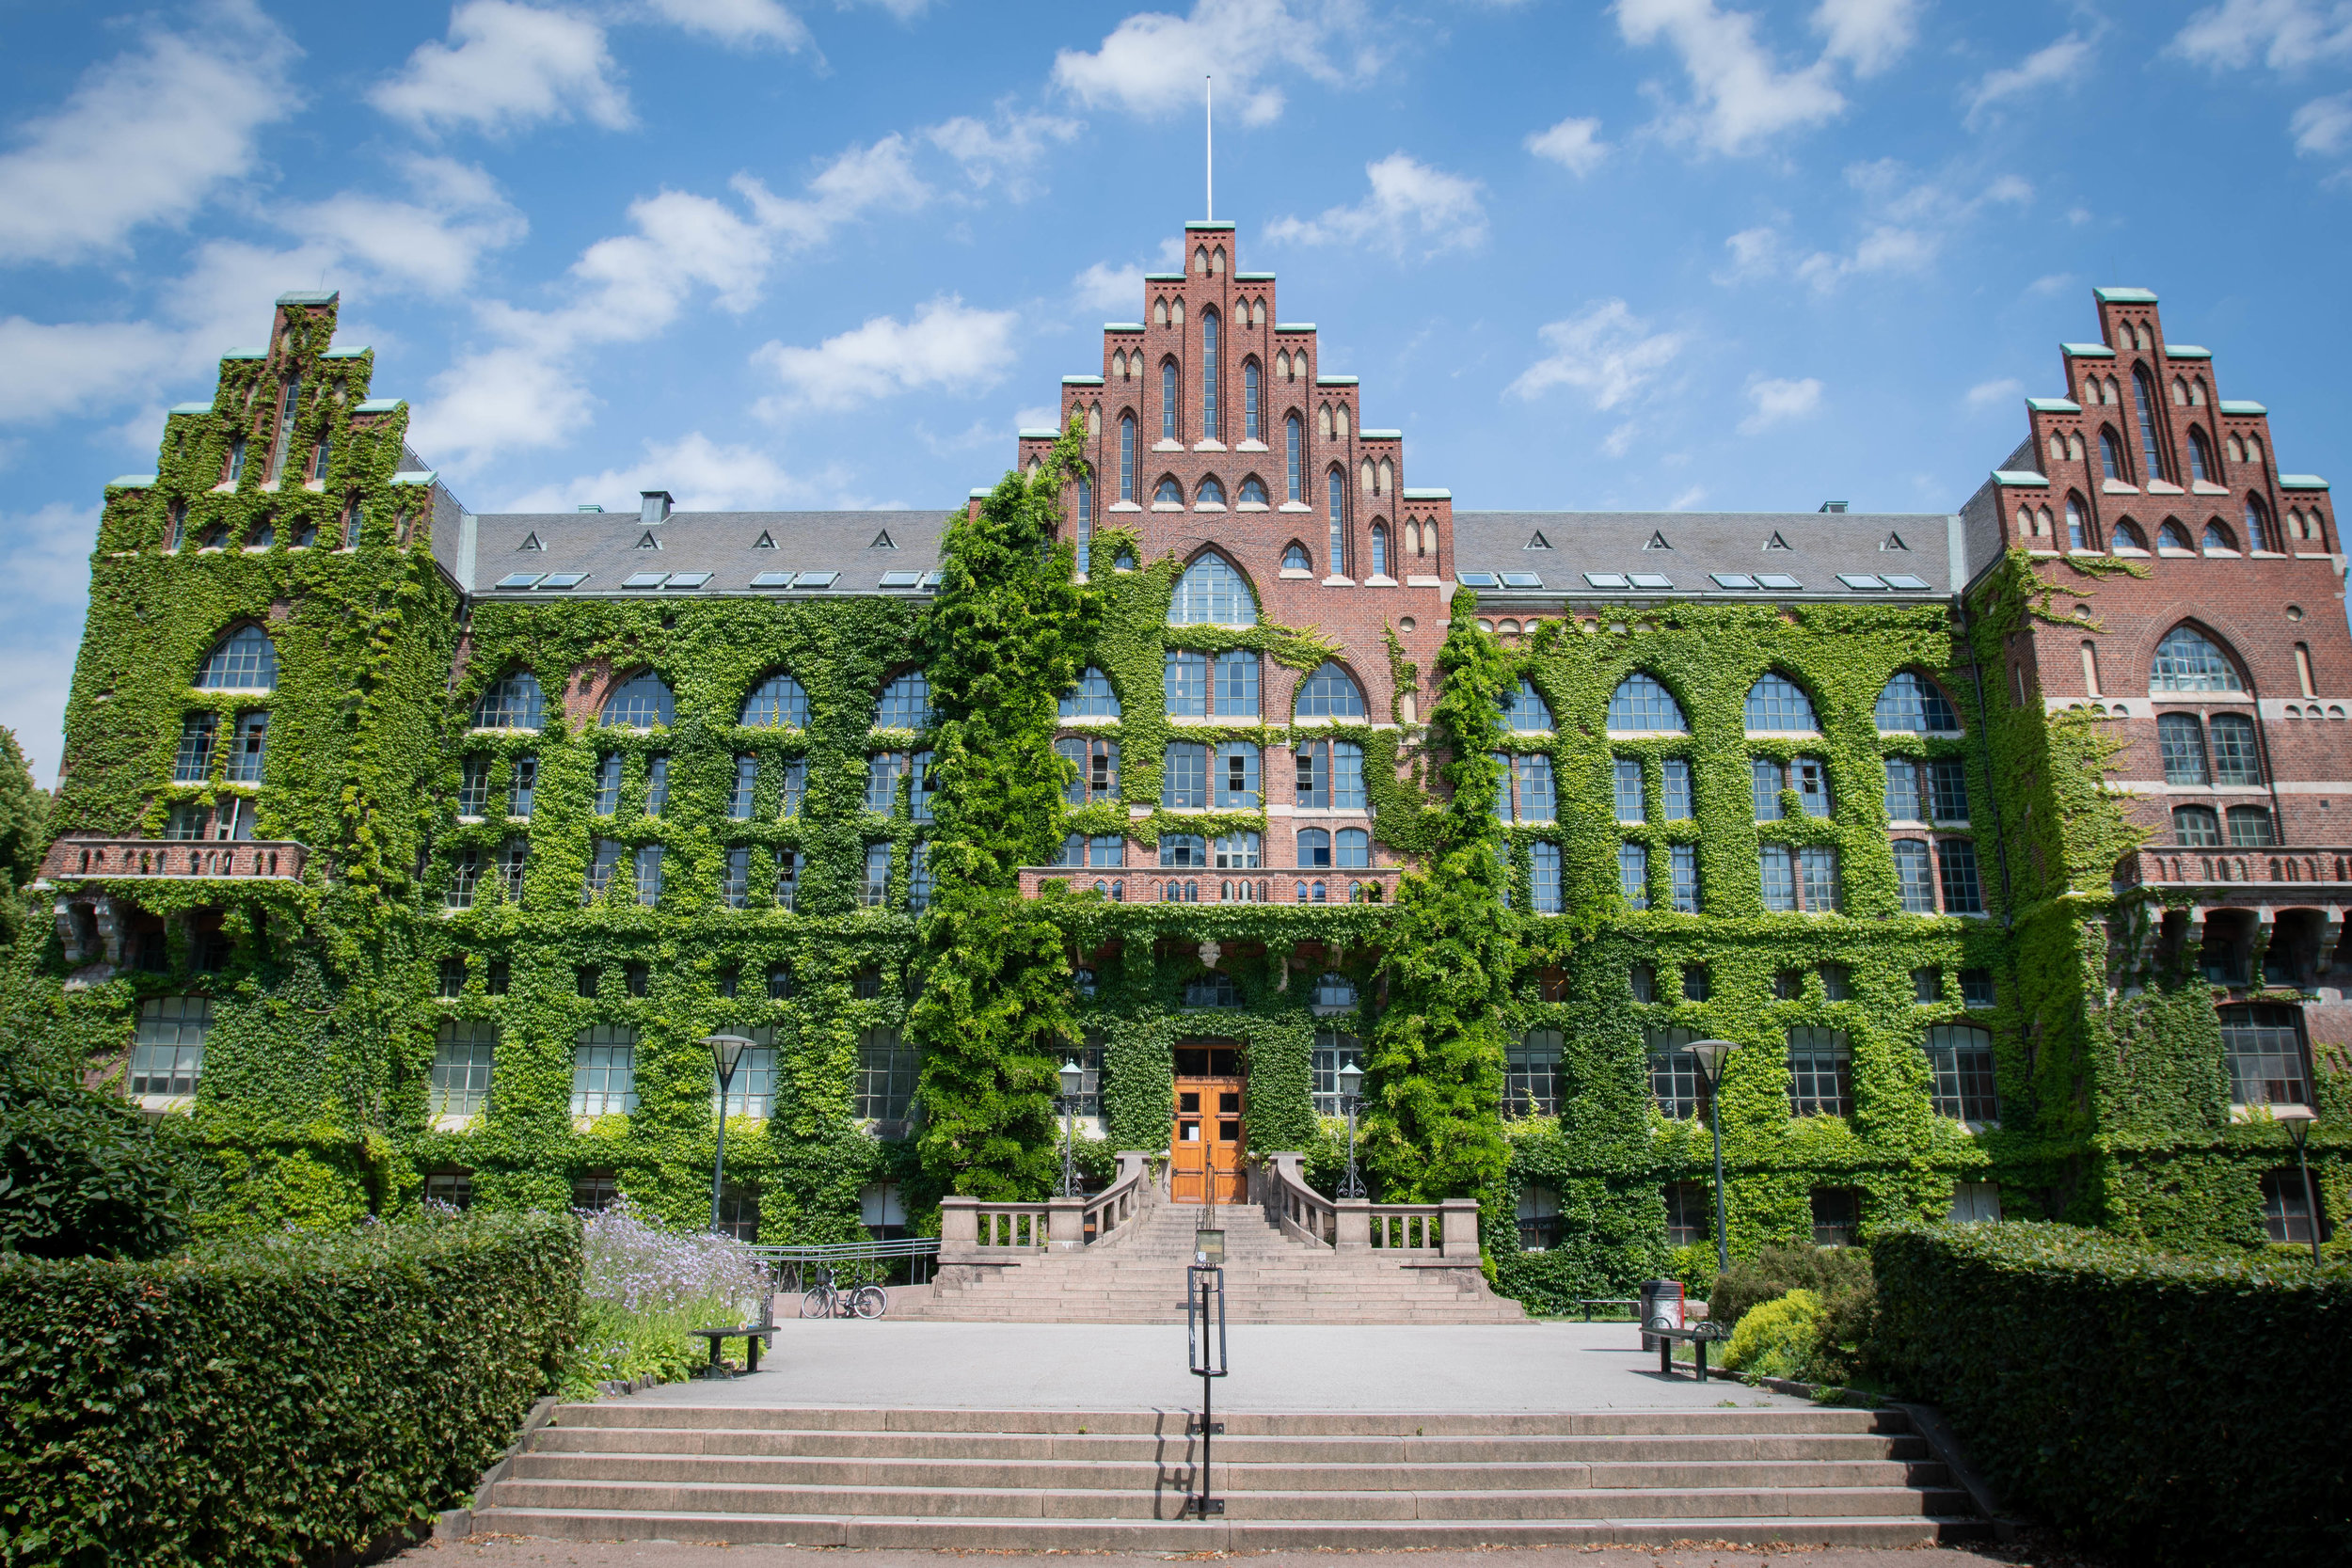 University Library in Lund is one of the most favourite stops among tourists and locals. It is so charming during summer and autumn. Should be on your must visit list.